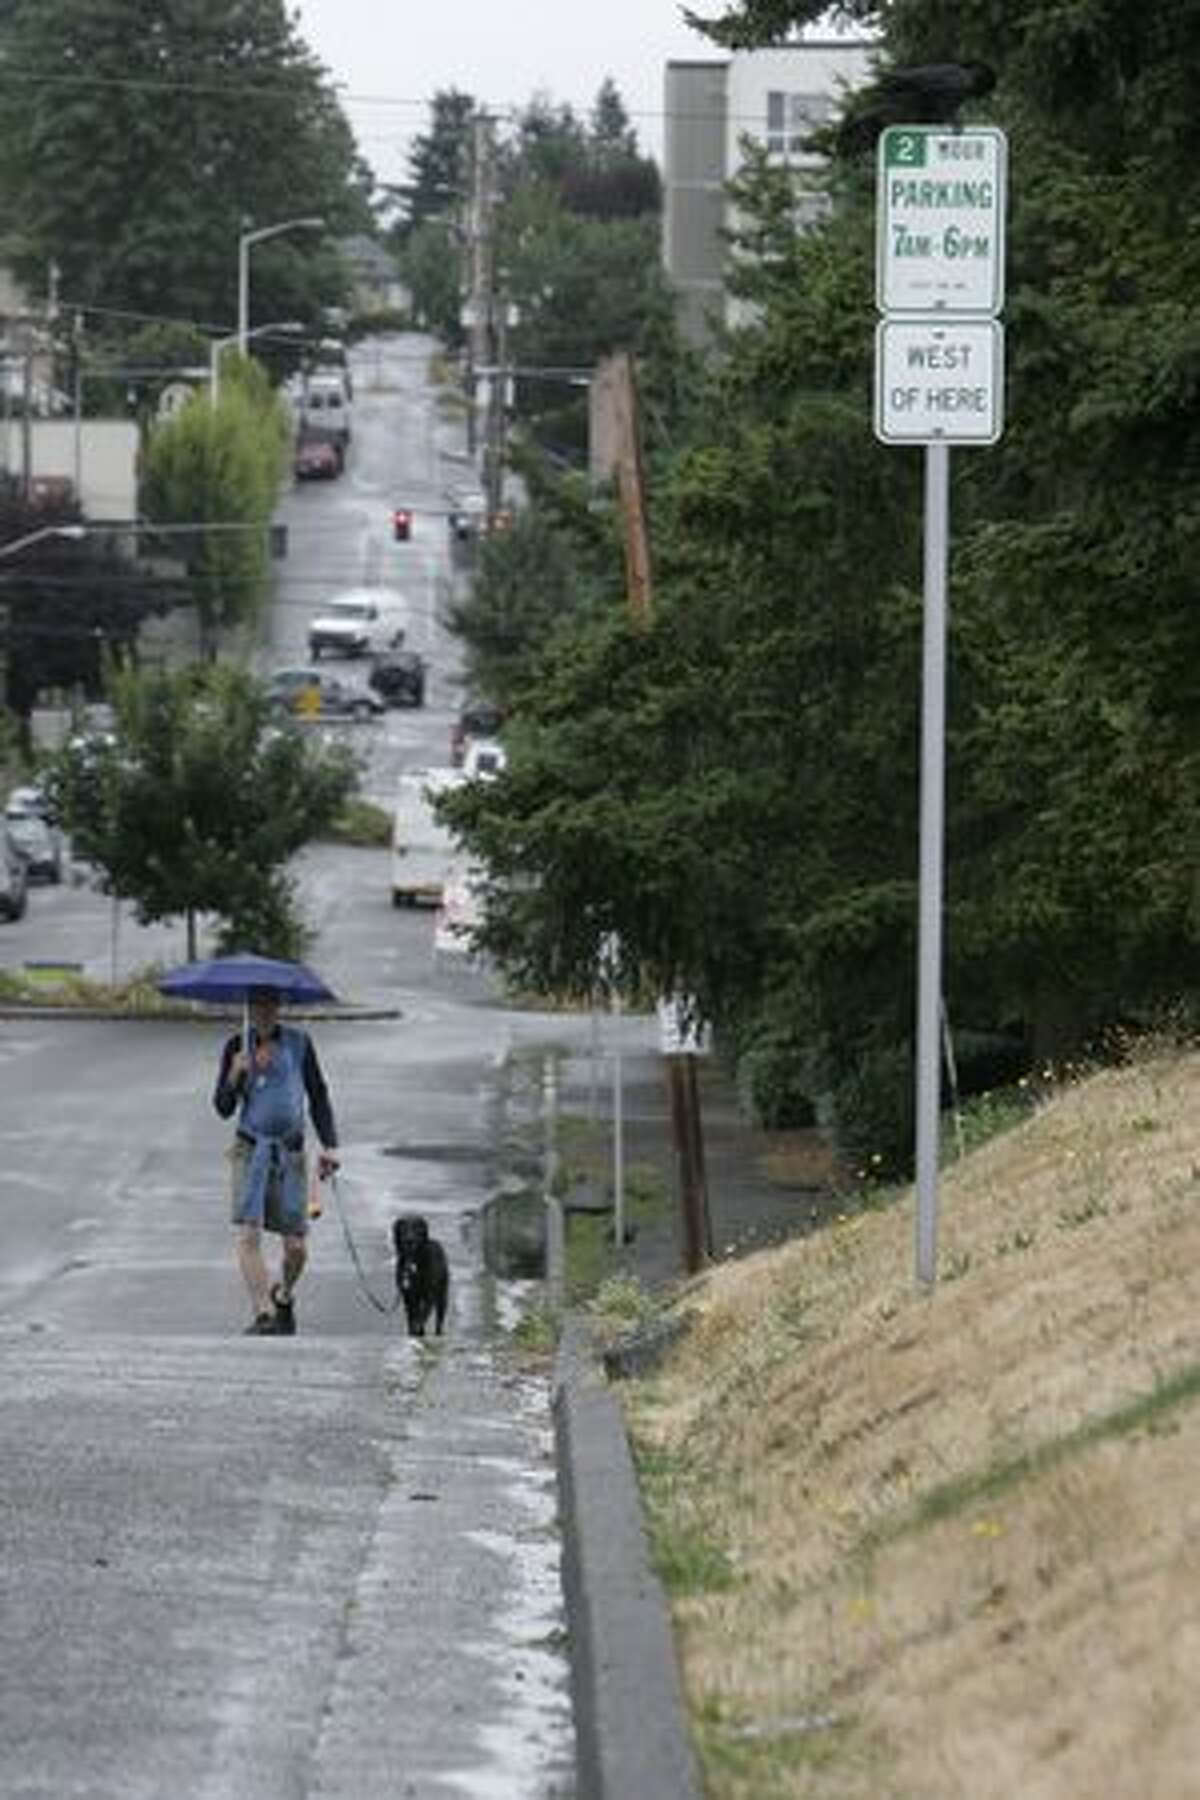 A father and son walk with their dog westbound along Northwest 87th Street in Seattle in this 2008 file photo. There are very few sidewalks in this area around Greenwood.